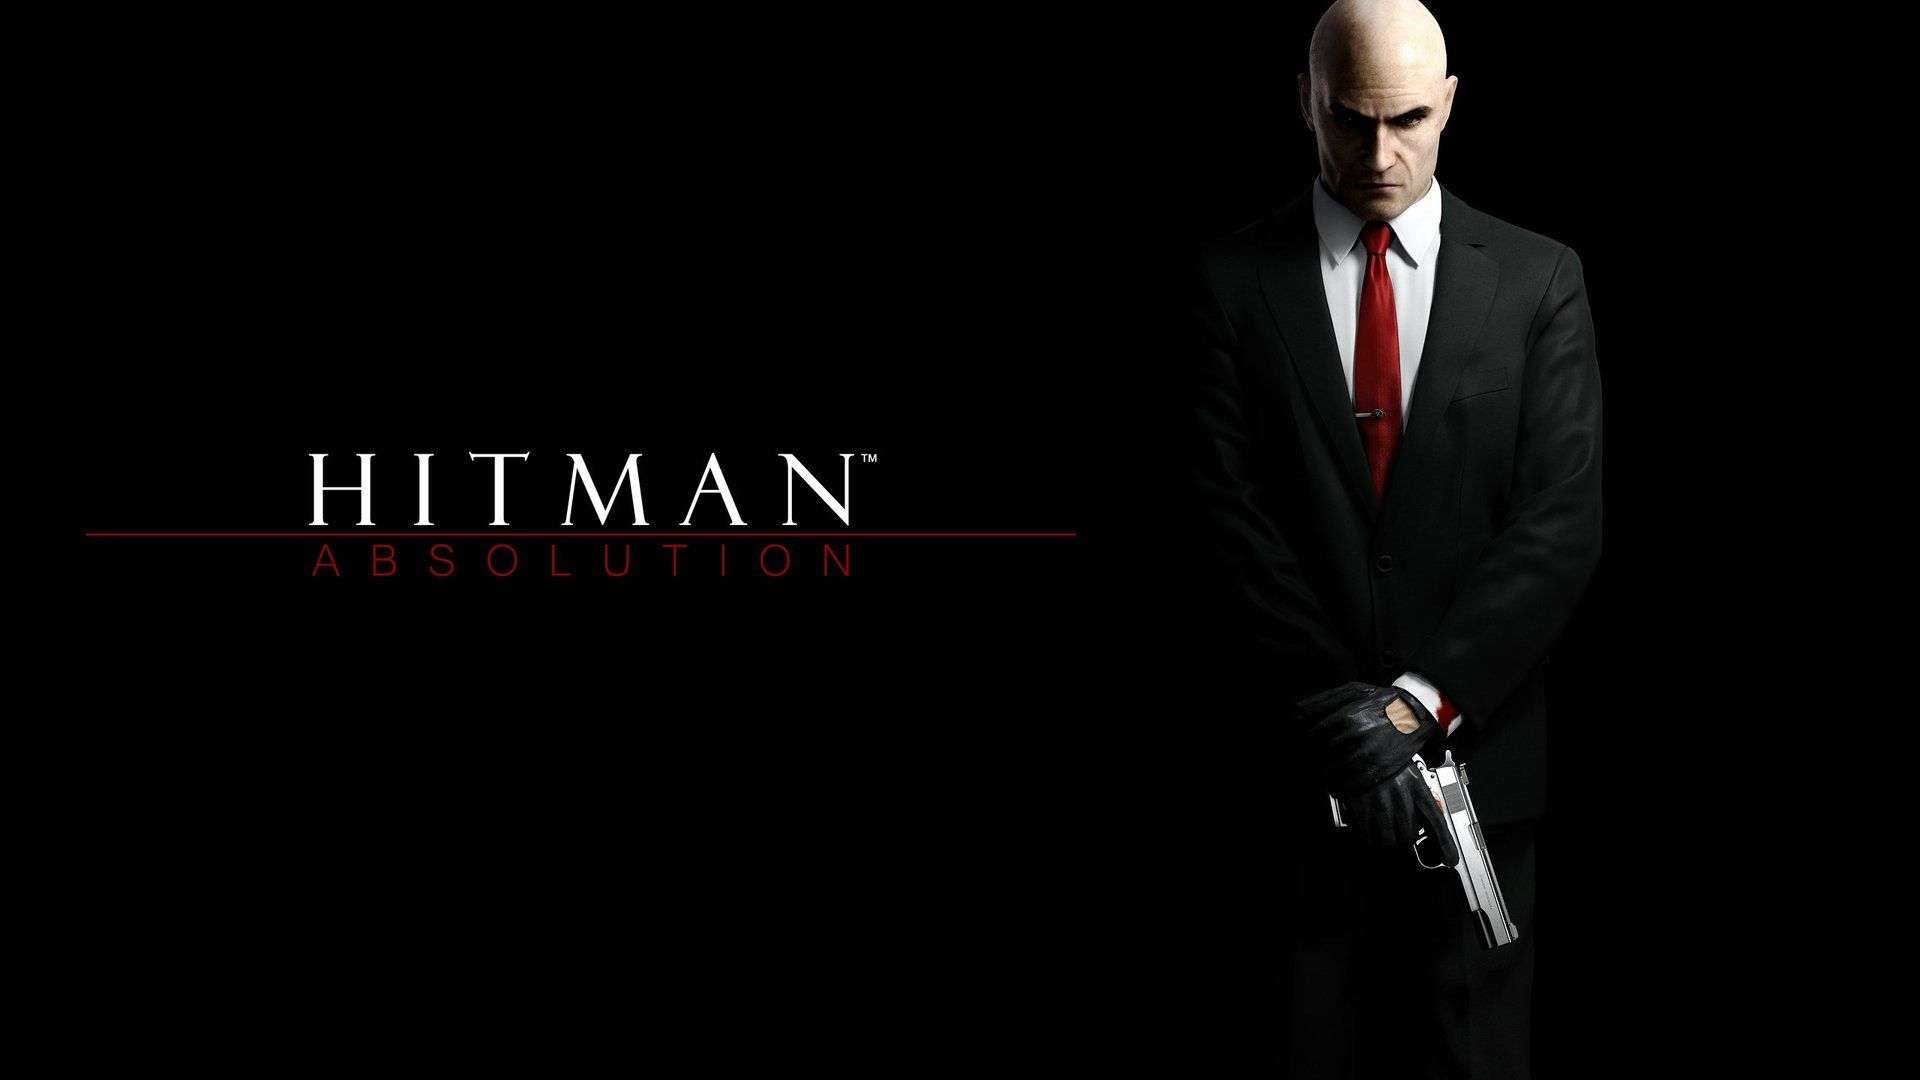 Hitman Full HD Wallpaper Picture Image 1920x1080